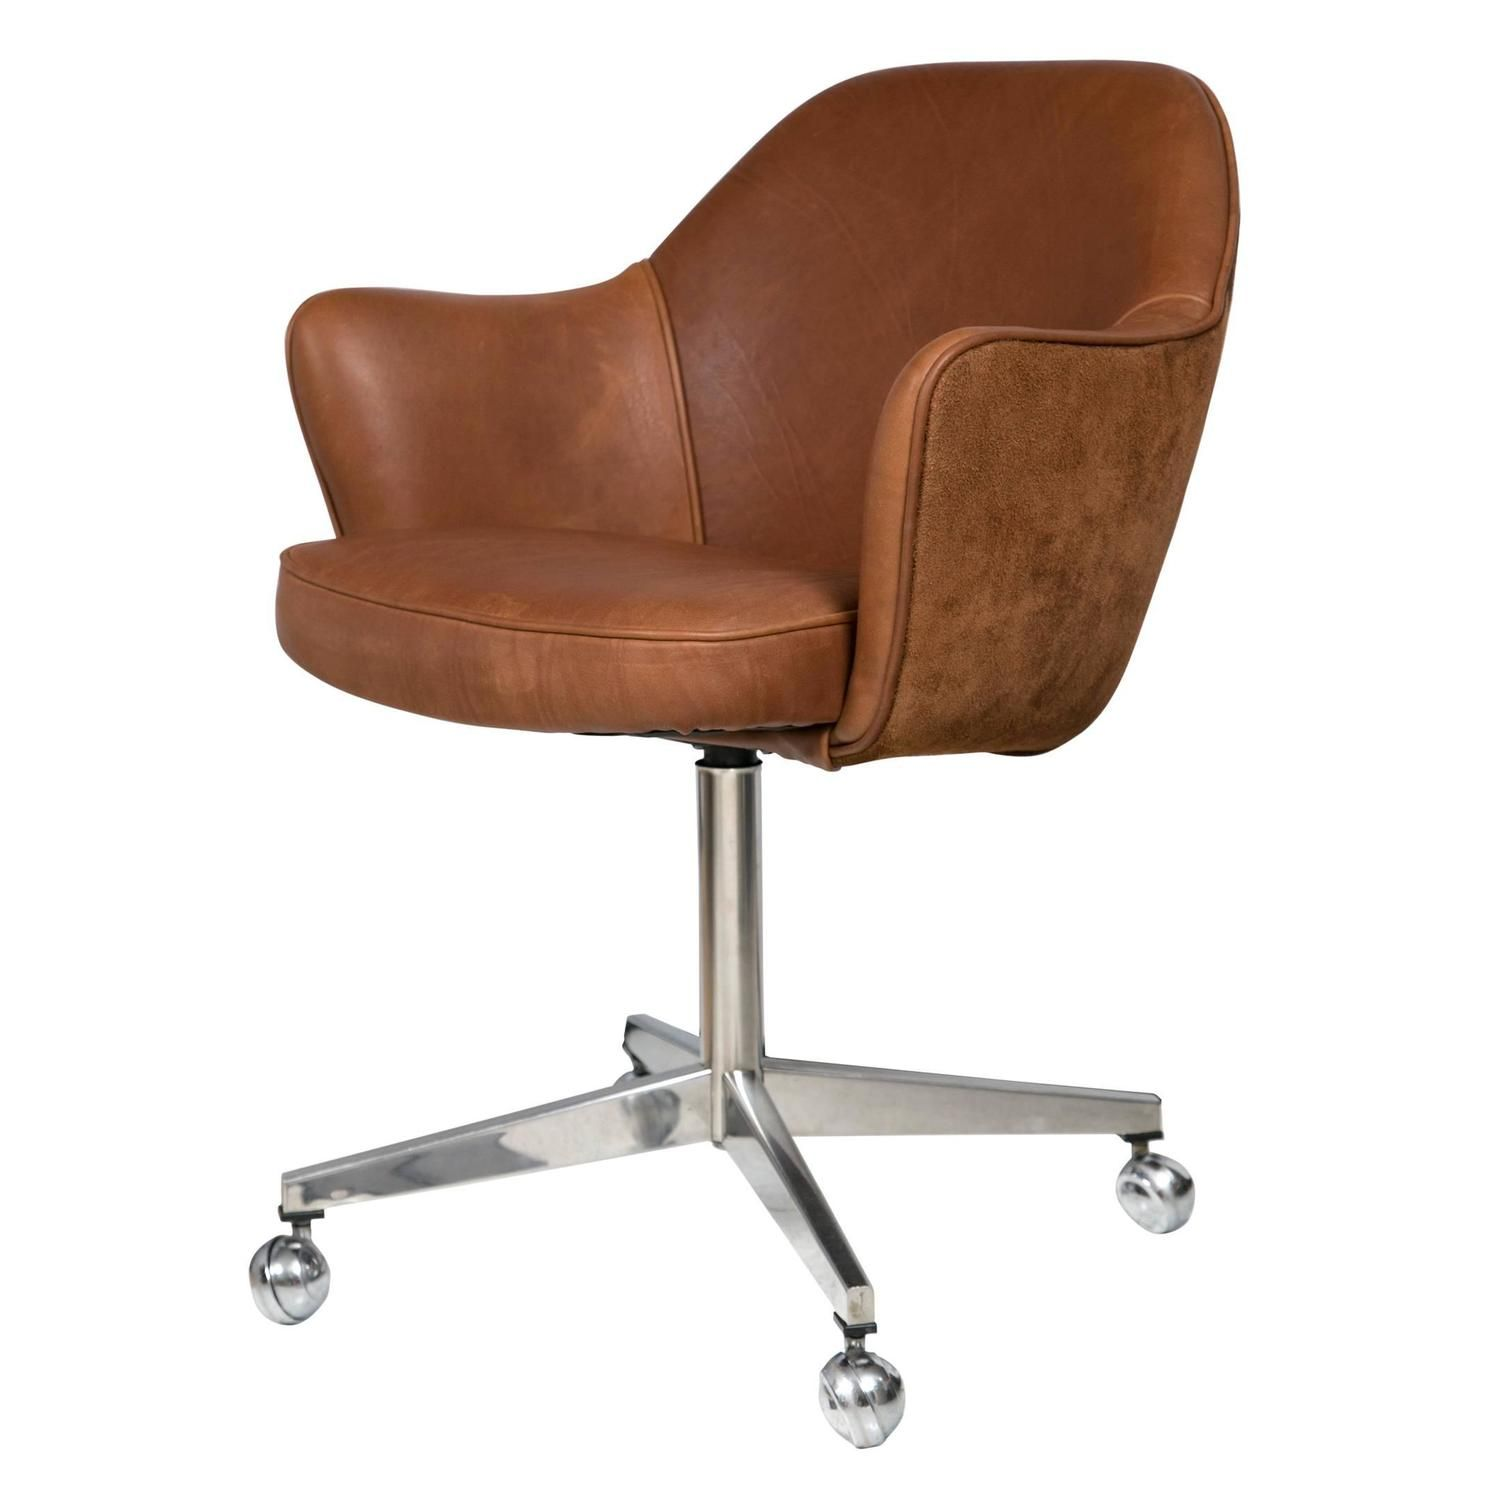 Knoll Desk Chair In Saddle Leather And Suede 1 Qty 1 Pc